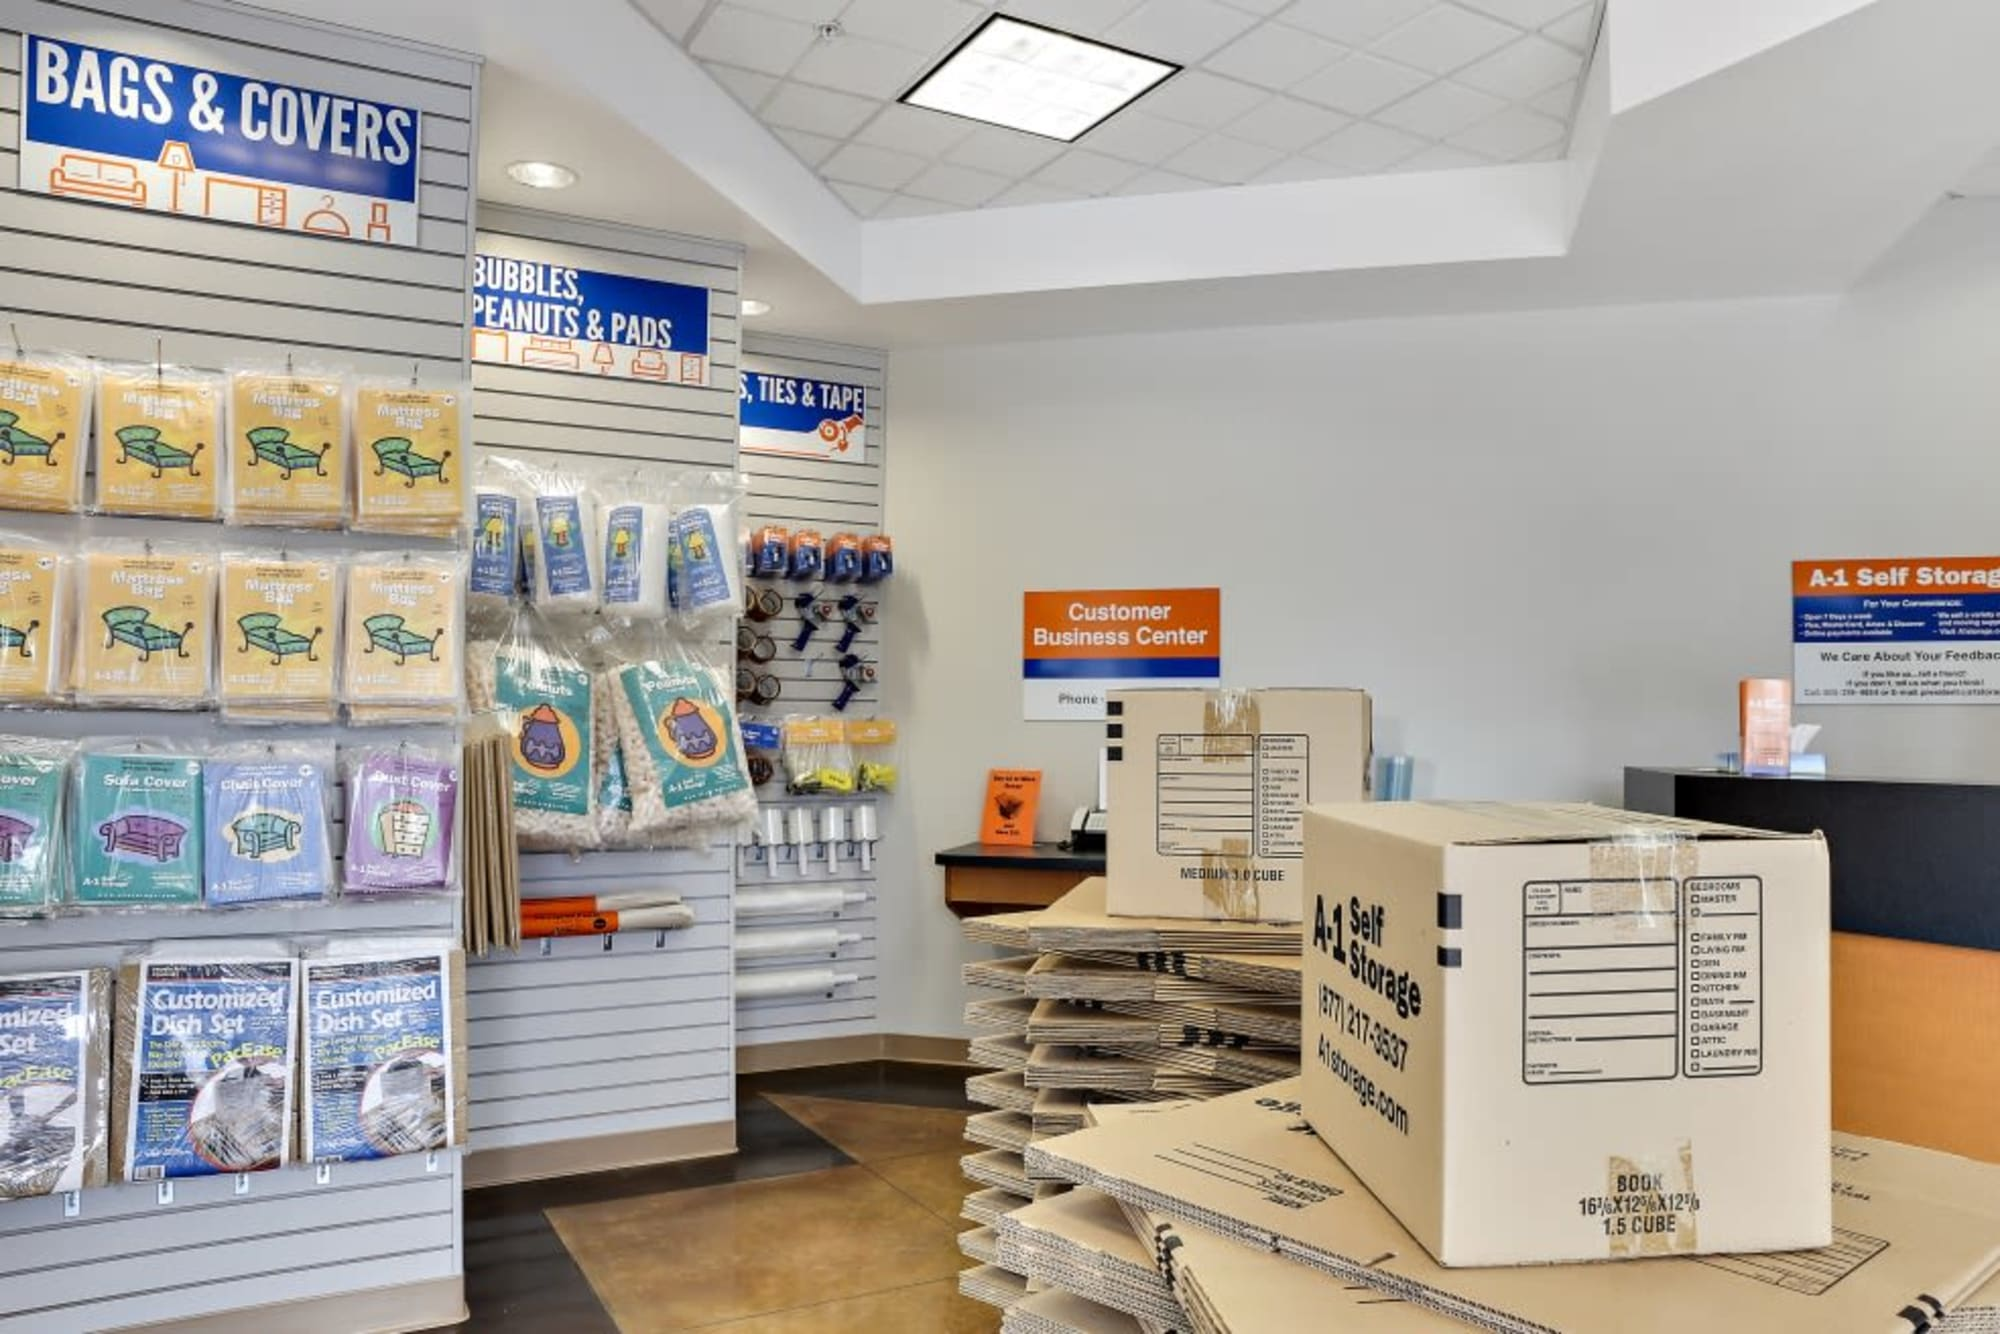 Moving and packing supplies available at A-1 Self Storage in San Jose, California